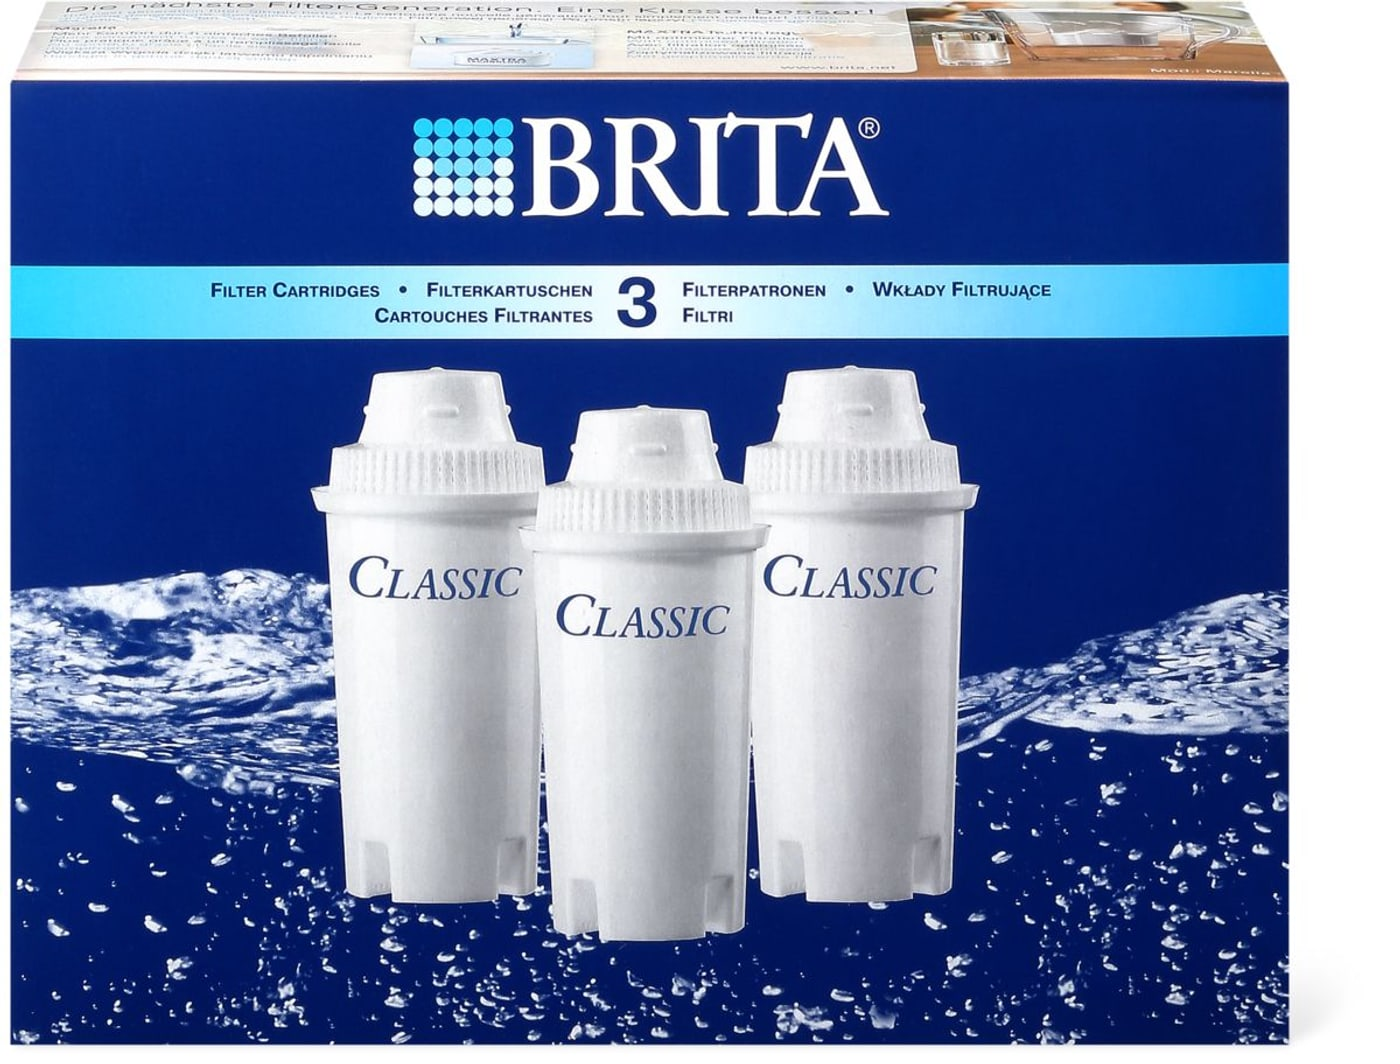 brita brita classic cartouches pour filtre eau migros. Black Bedroom Furniture Sets. Home Design Ideas